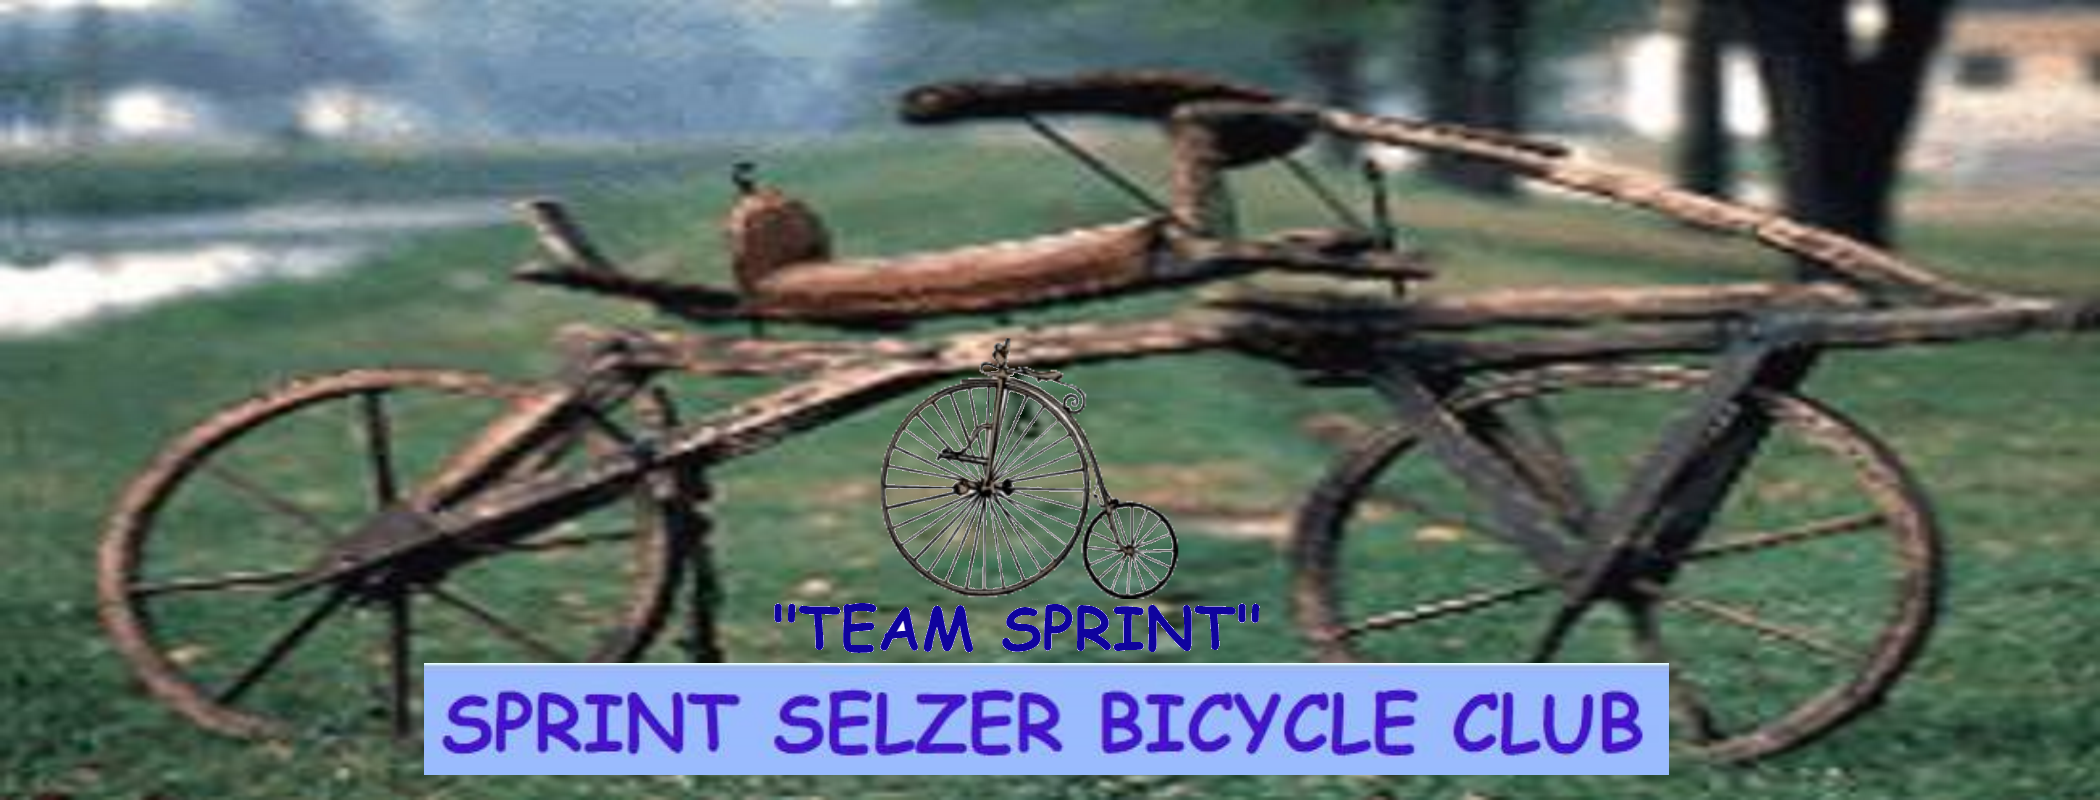 TEAM SPRINT! Old Bikes